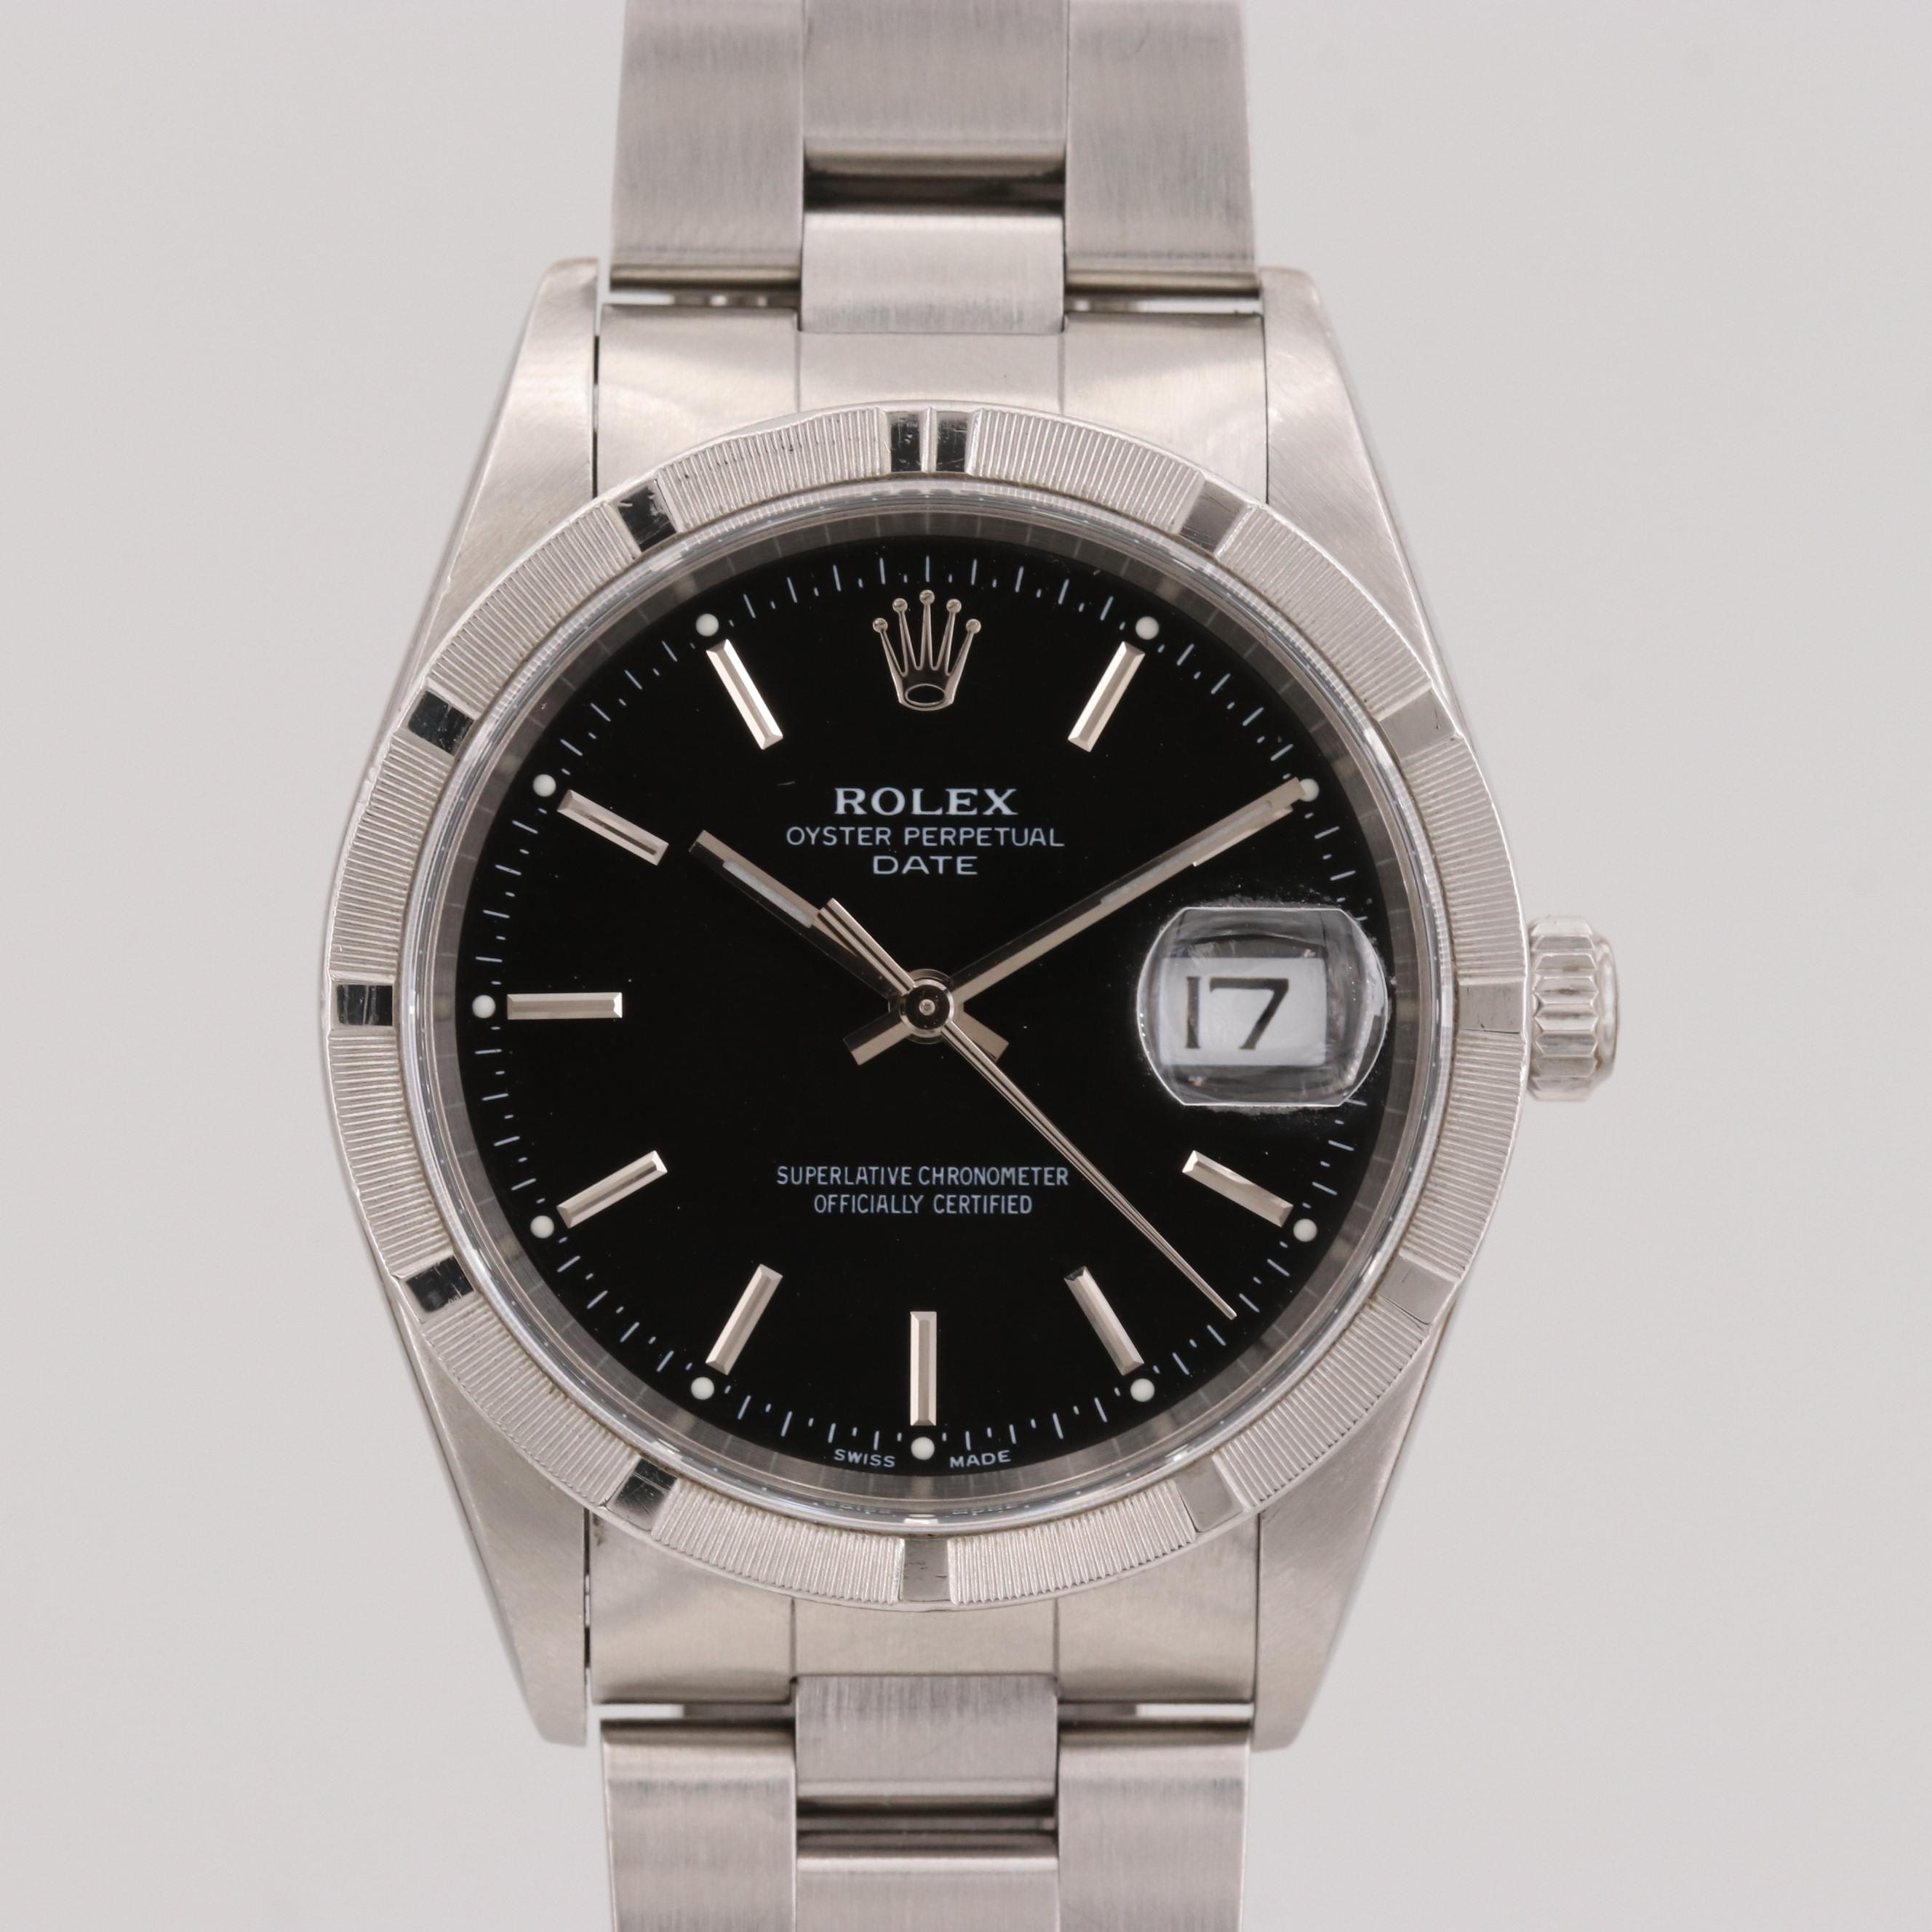 Rolex Oyster Perpetual Date Stainless Steel Automatic Wristwatch, 1999